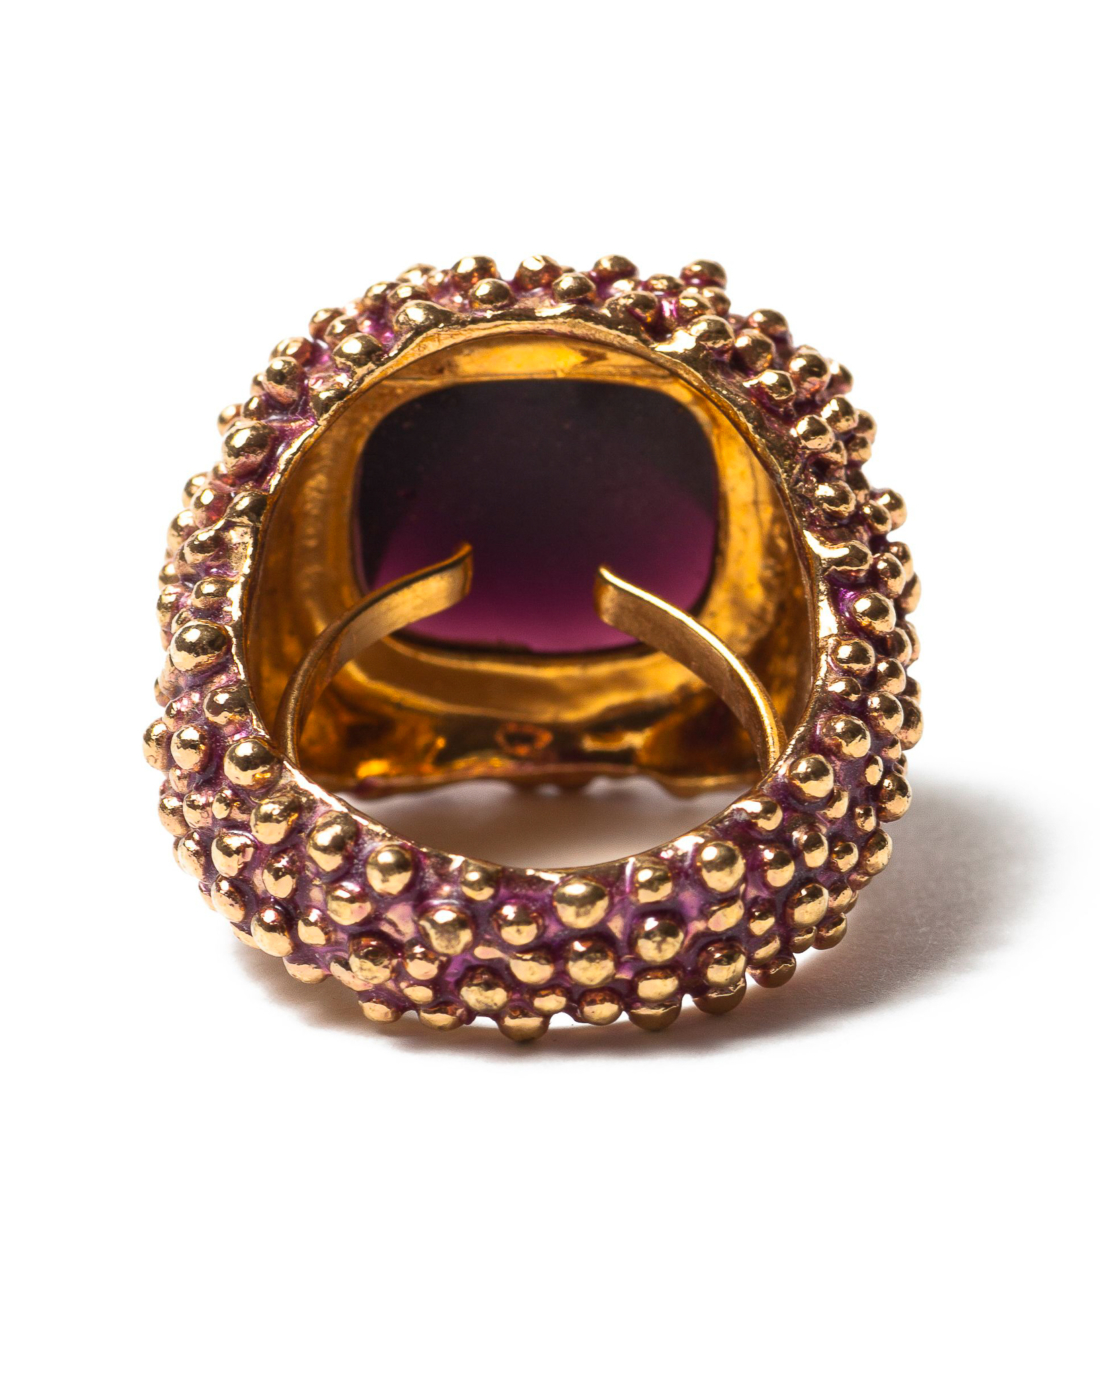 Smoky Amethyst Glass on Pebbled Gold Ring, circa 1980's